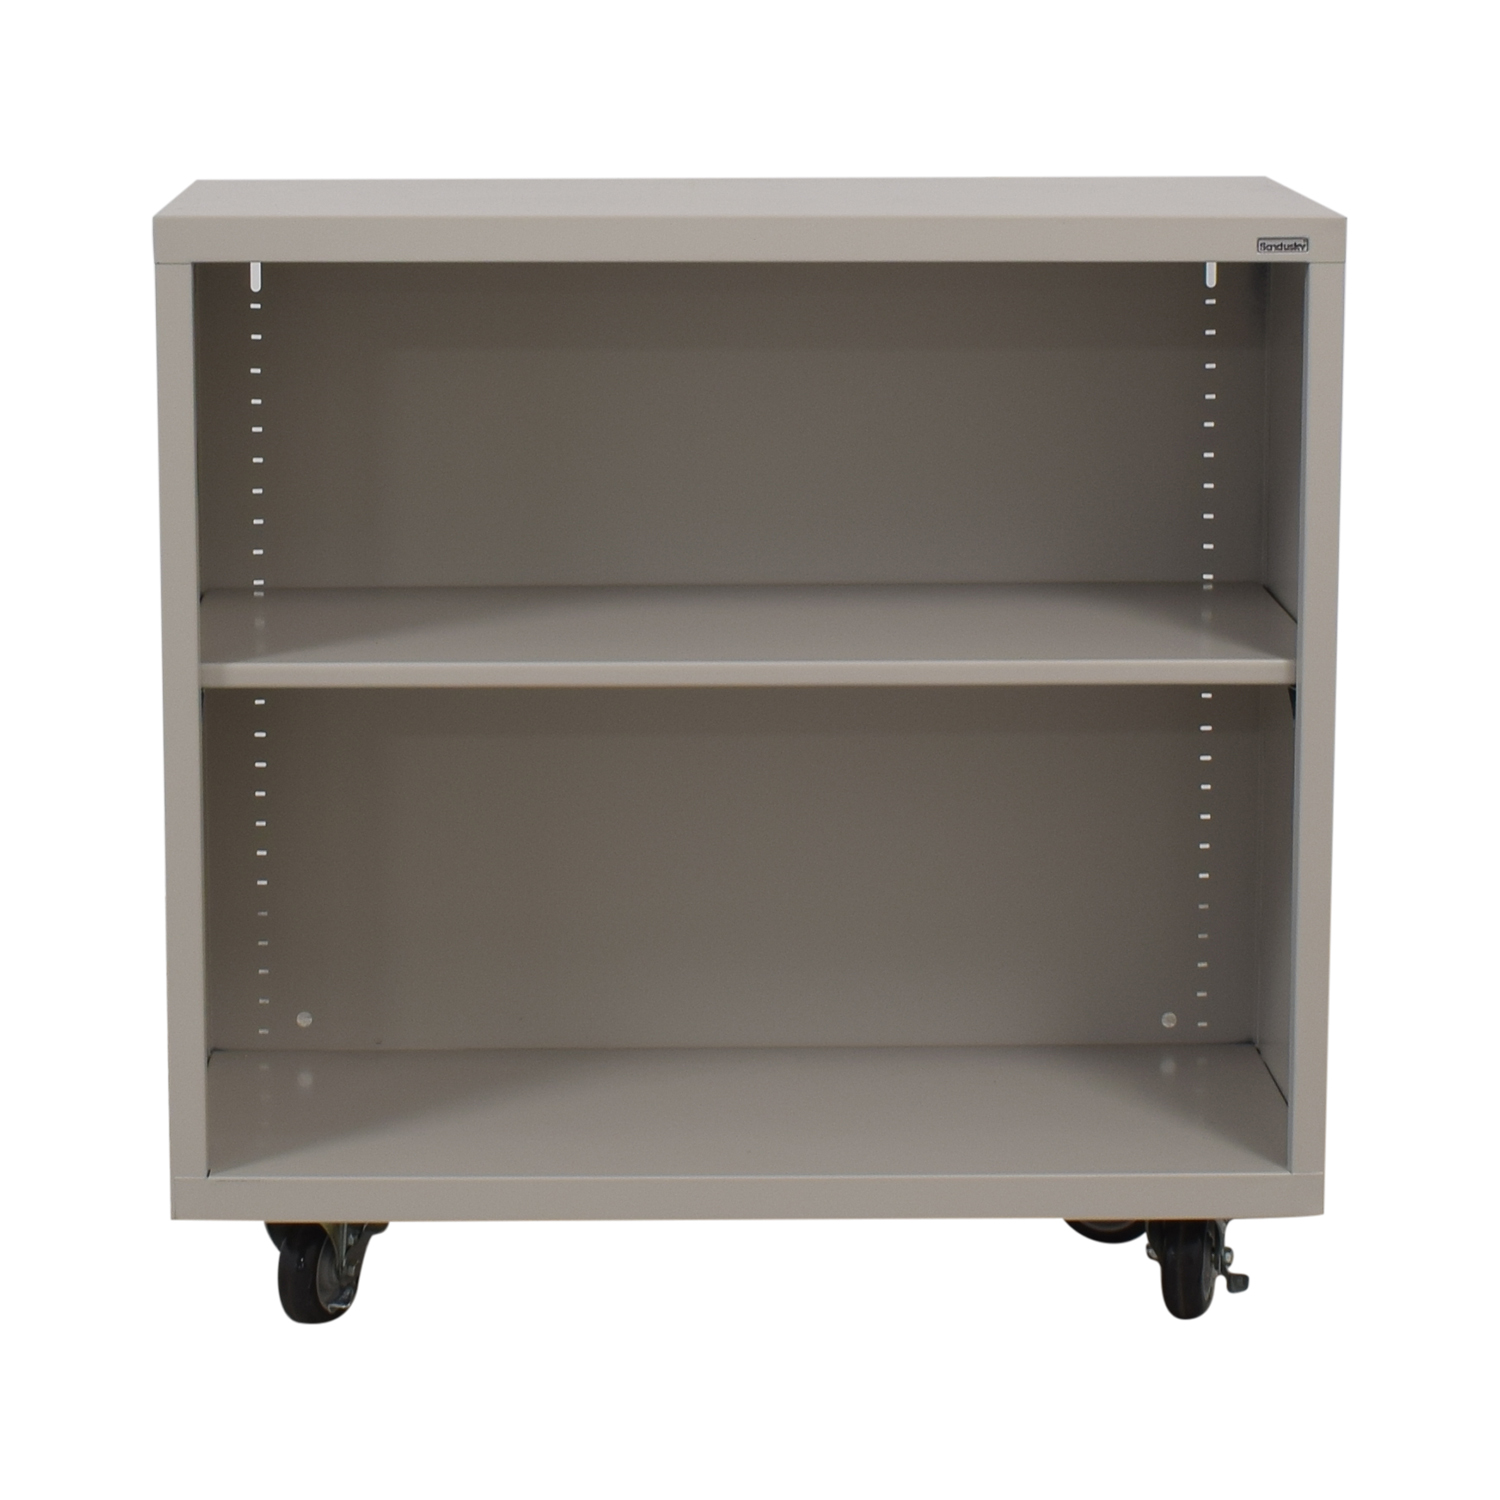 Sandusky Sandusky Metal Shelves on Casters discount